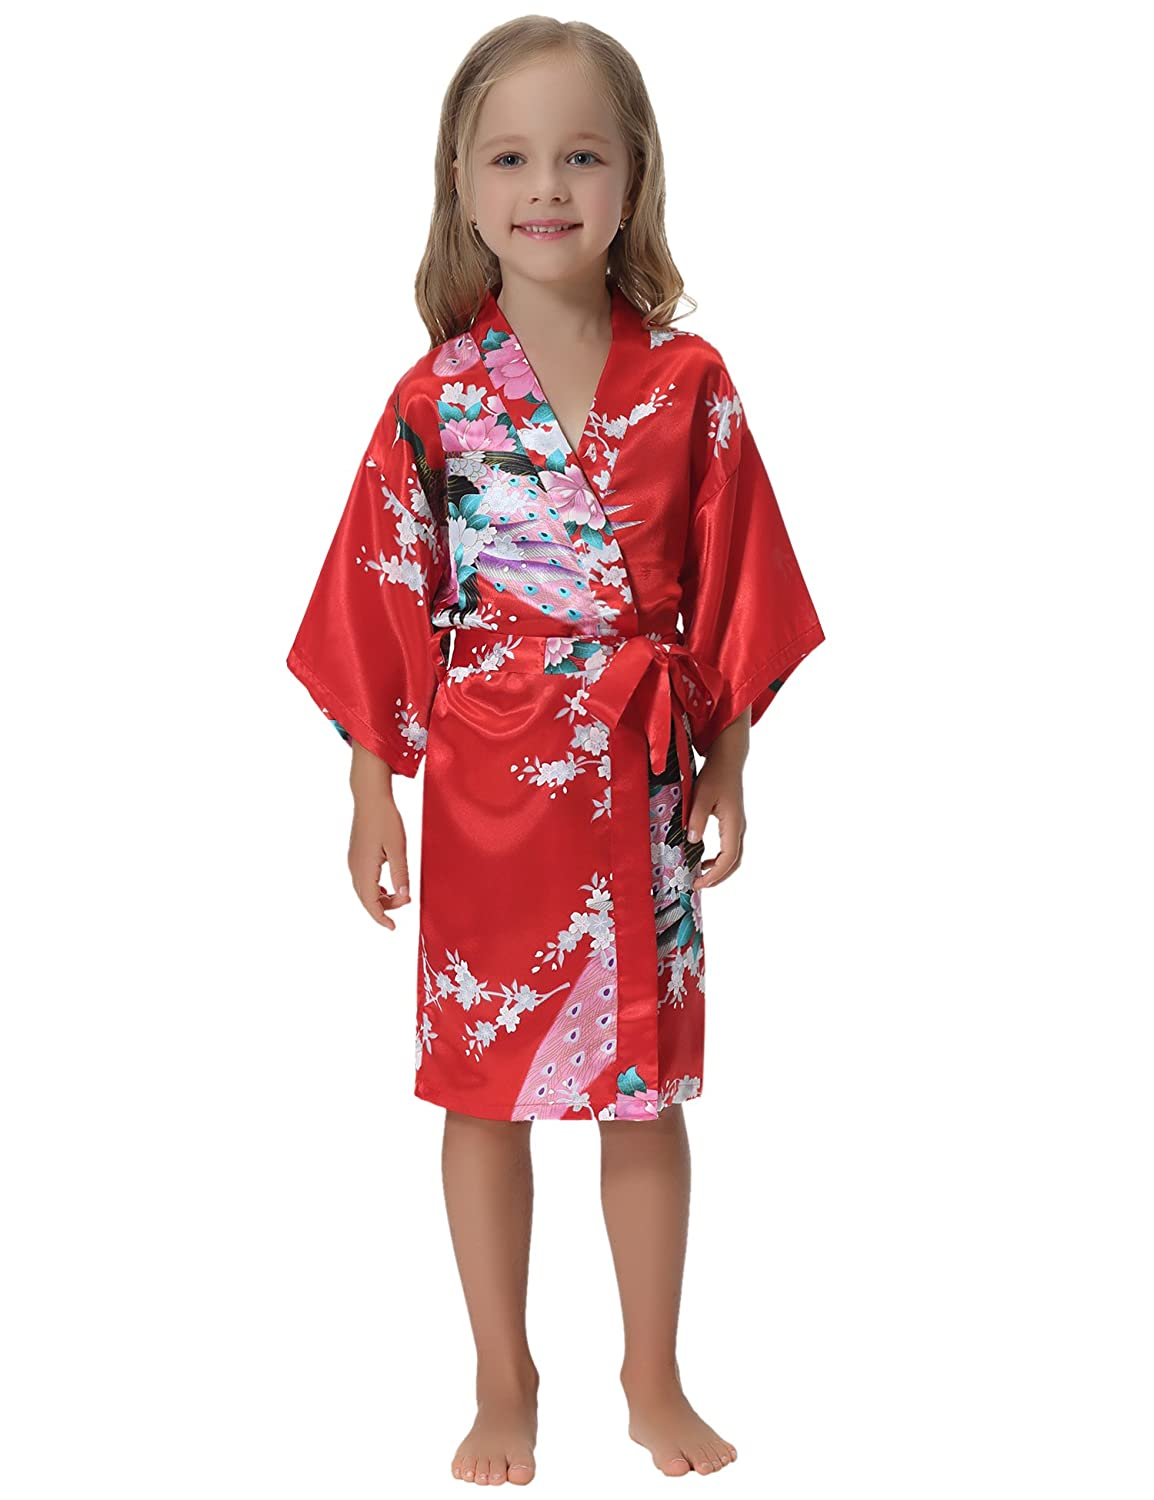 d7e8a23160c satin. Beautiful blossoms   peacocks designed satin kimono robe. Flower  girl robe